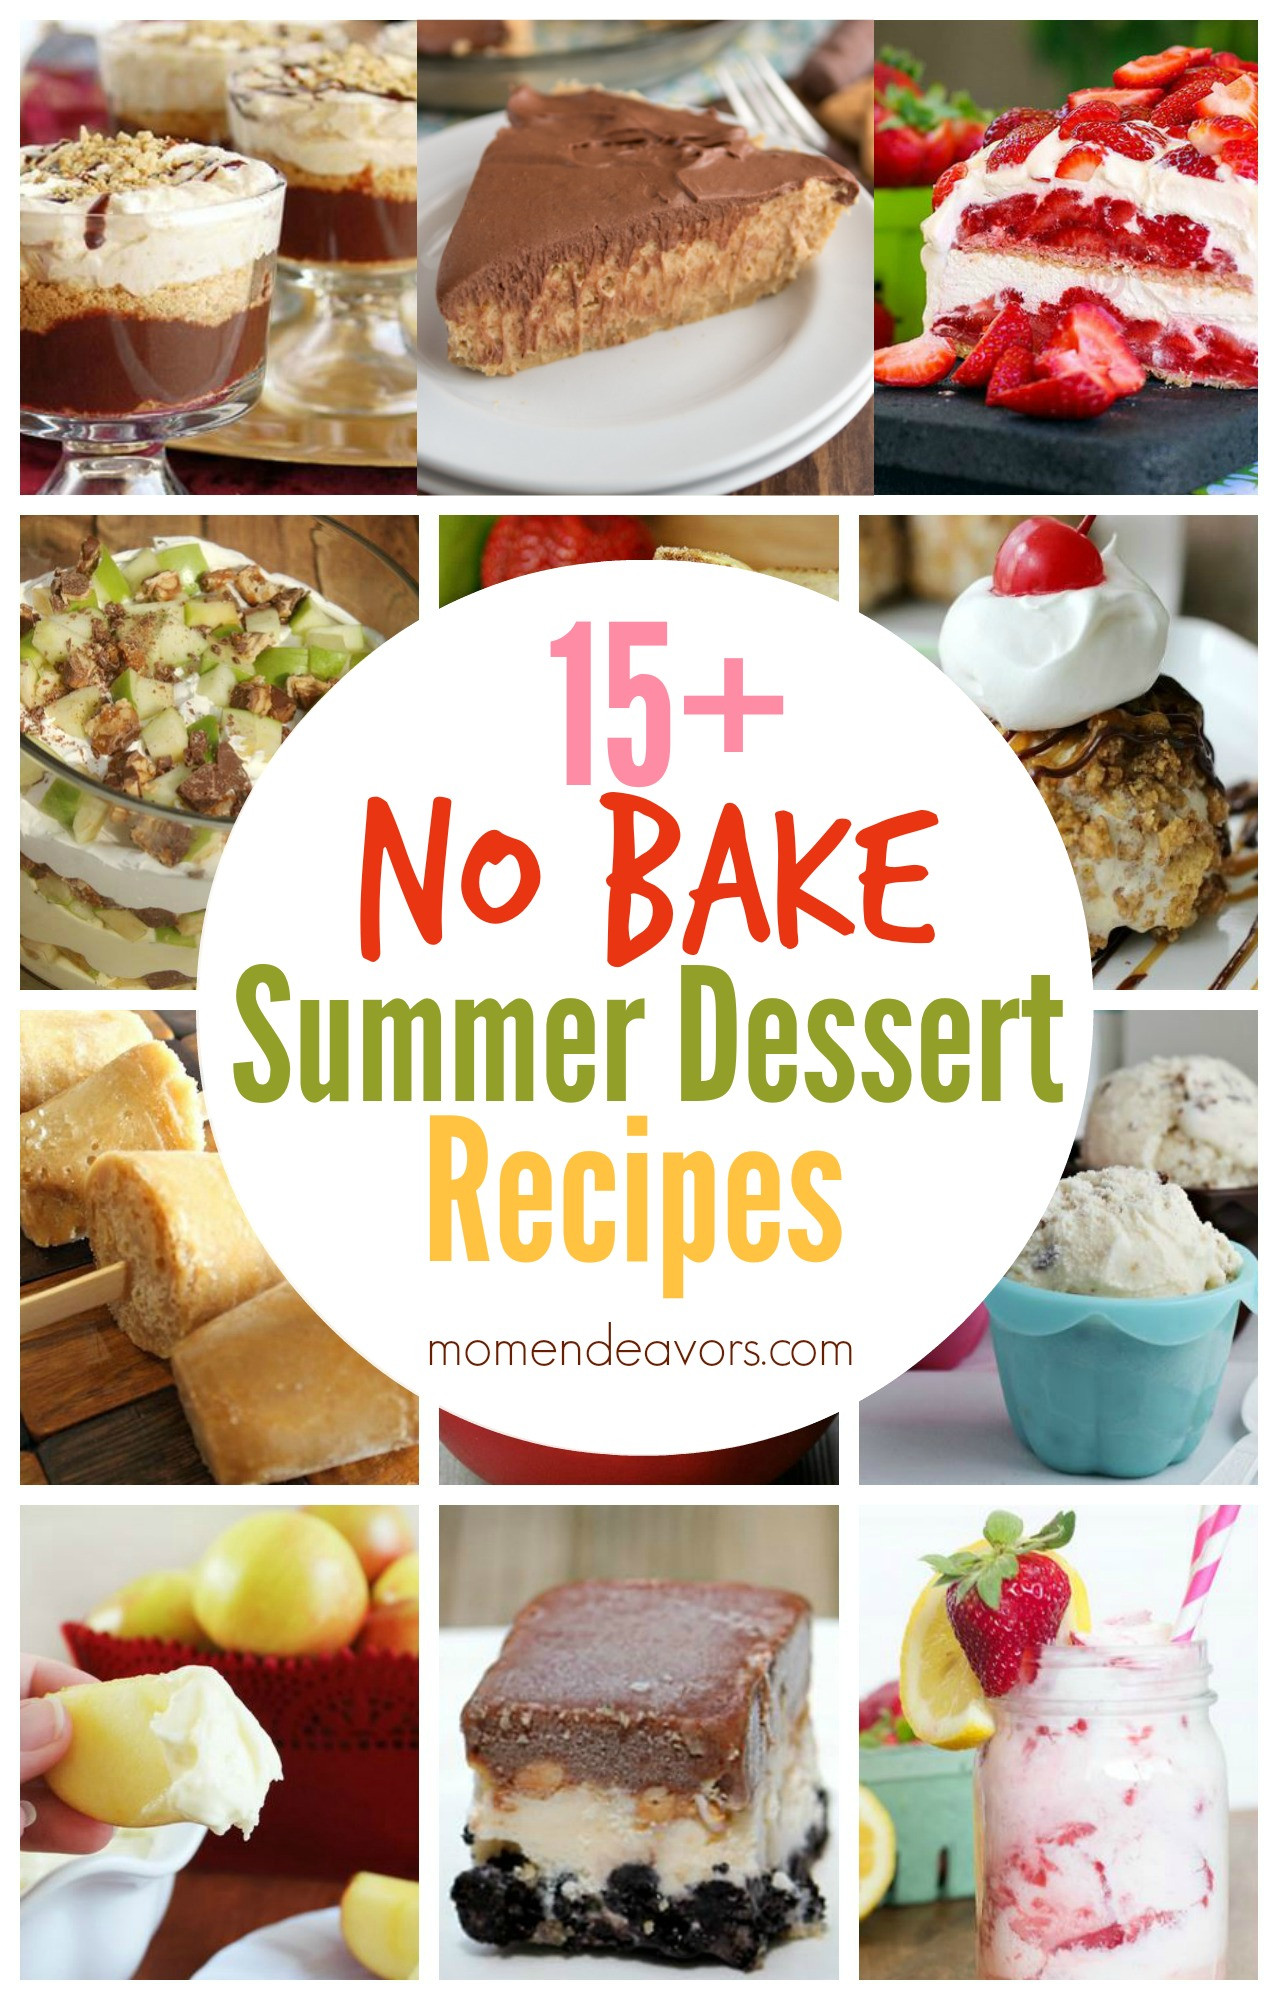 No Bake Summer Desserts  15 No Bake Summer Dessert Recipes